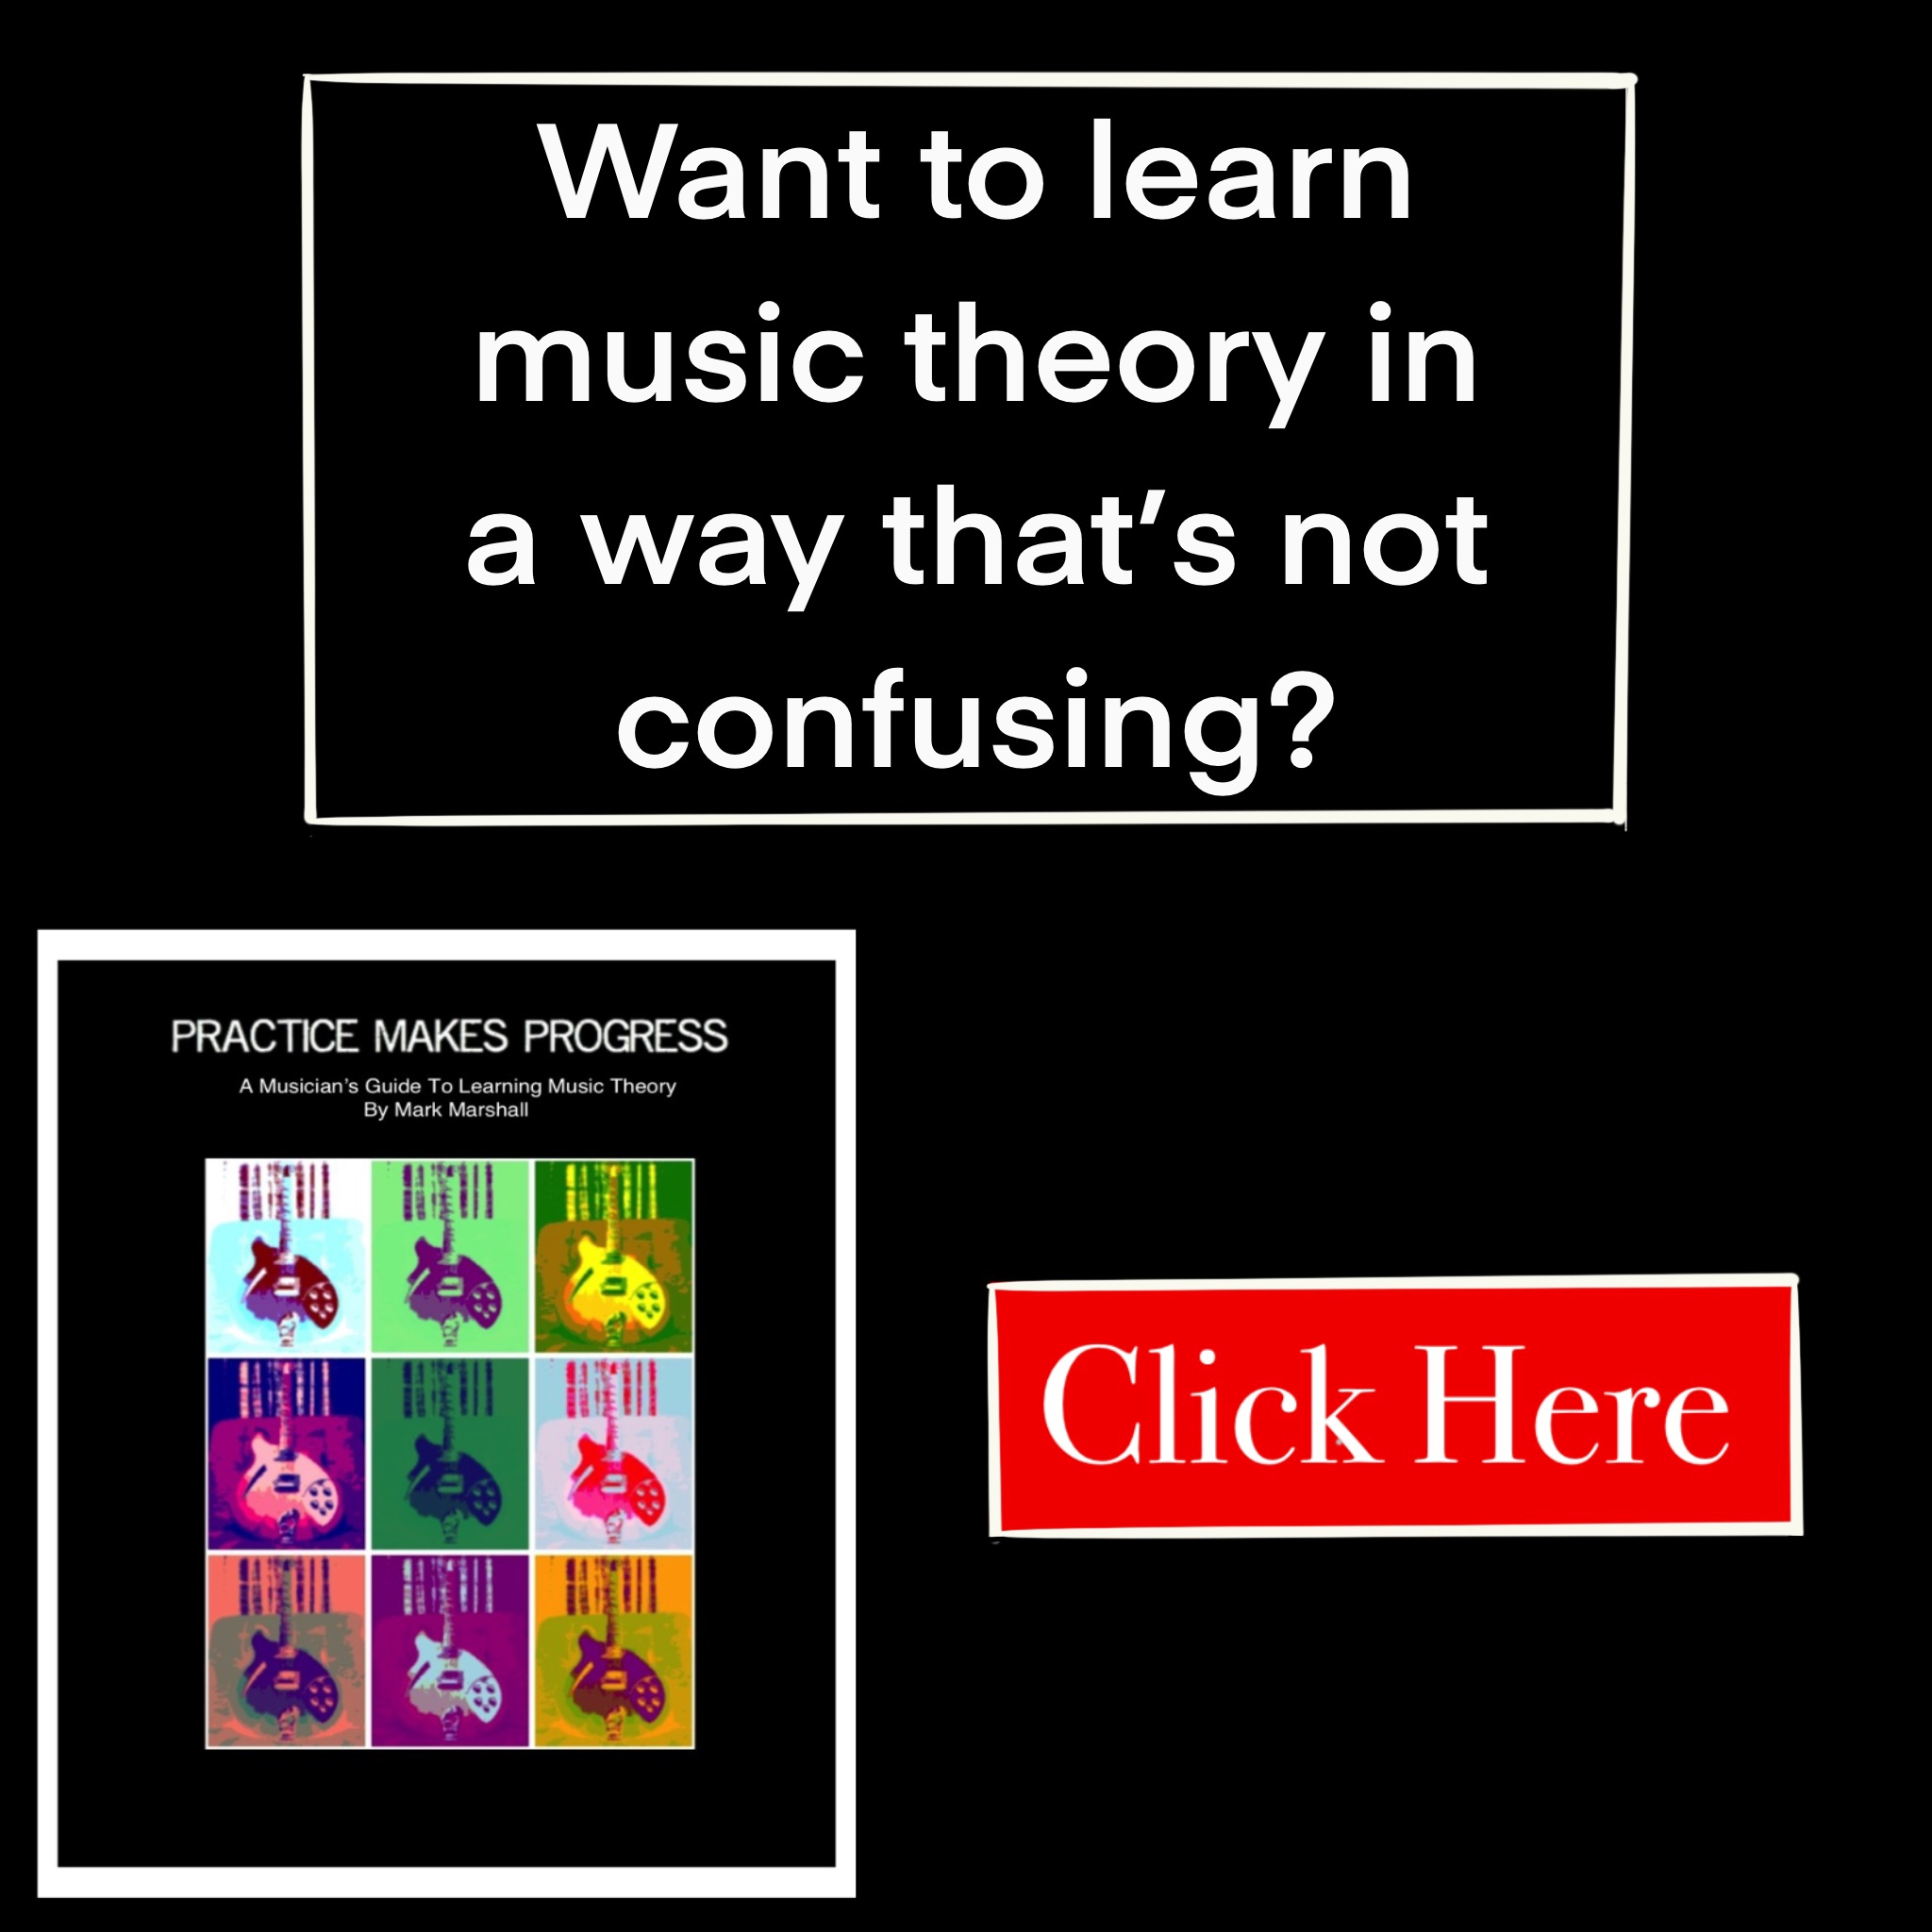 Practice makes progress music theory book by mark marshall.jpeg